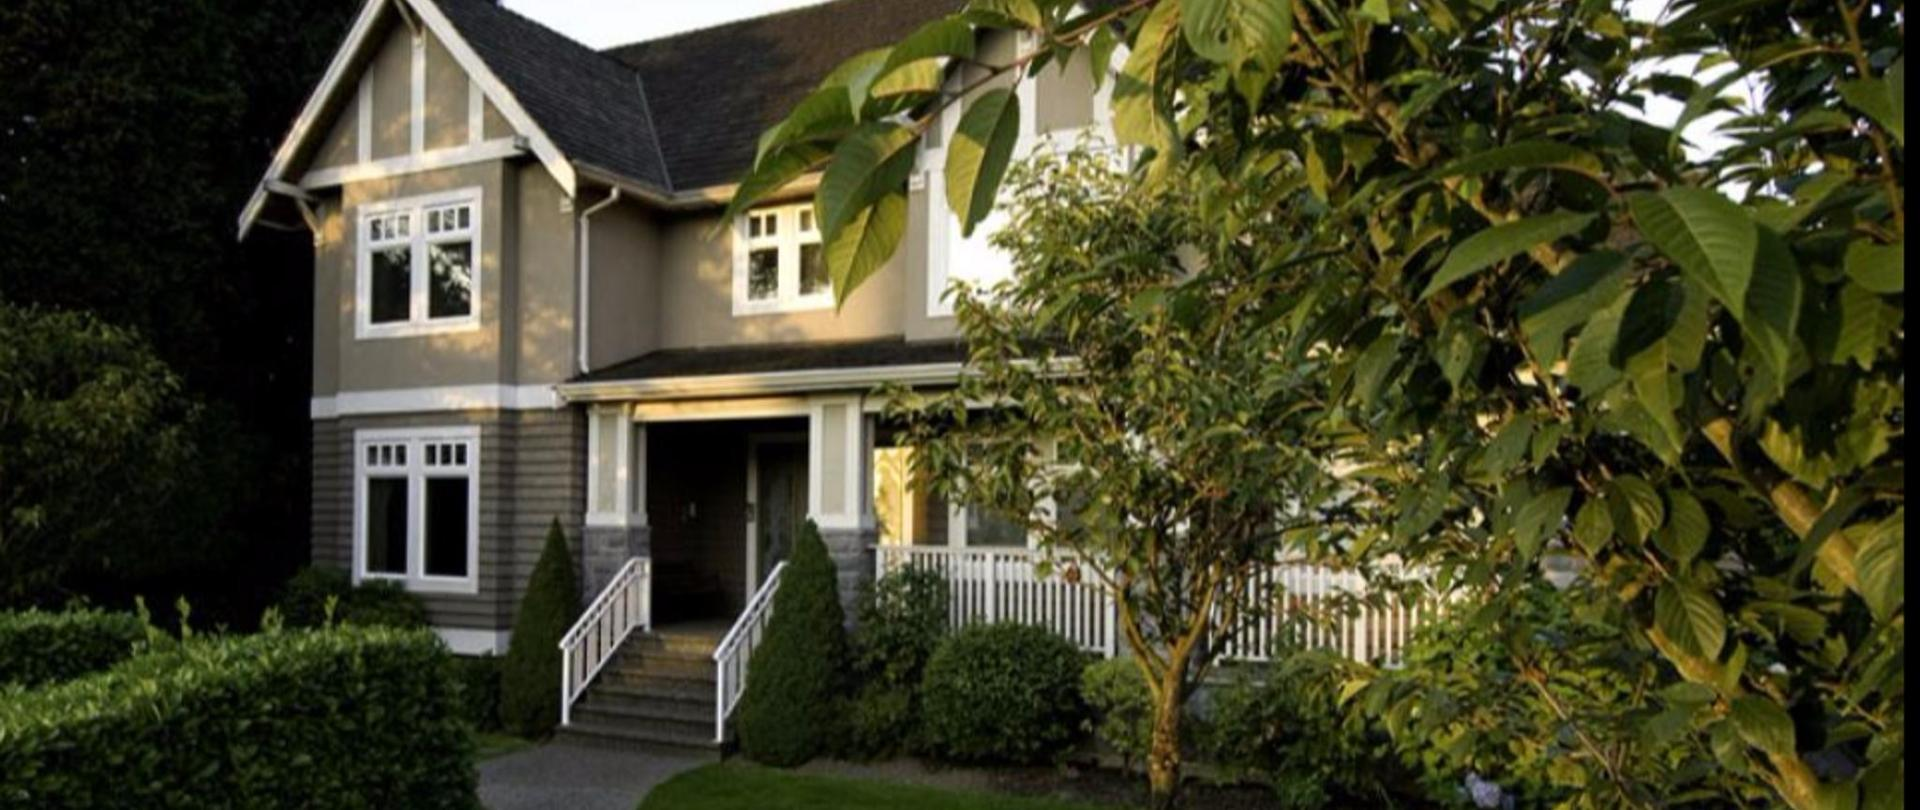 Granville House Bed and Breakfast